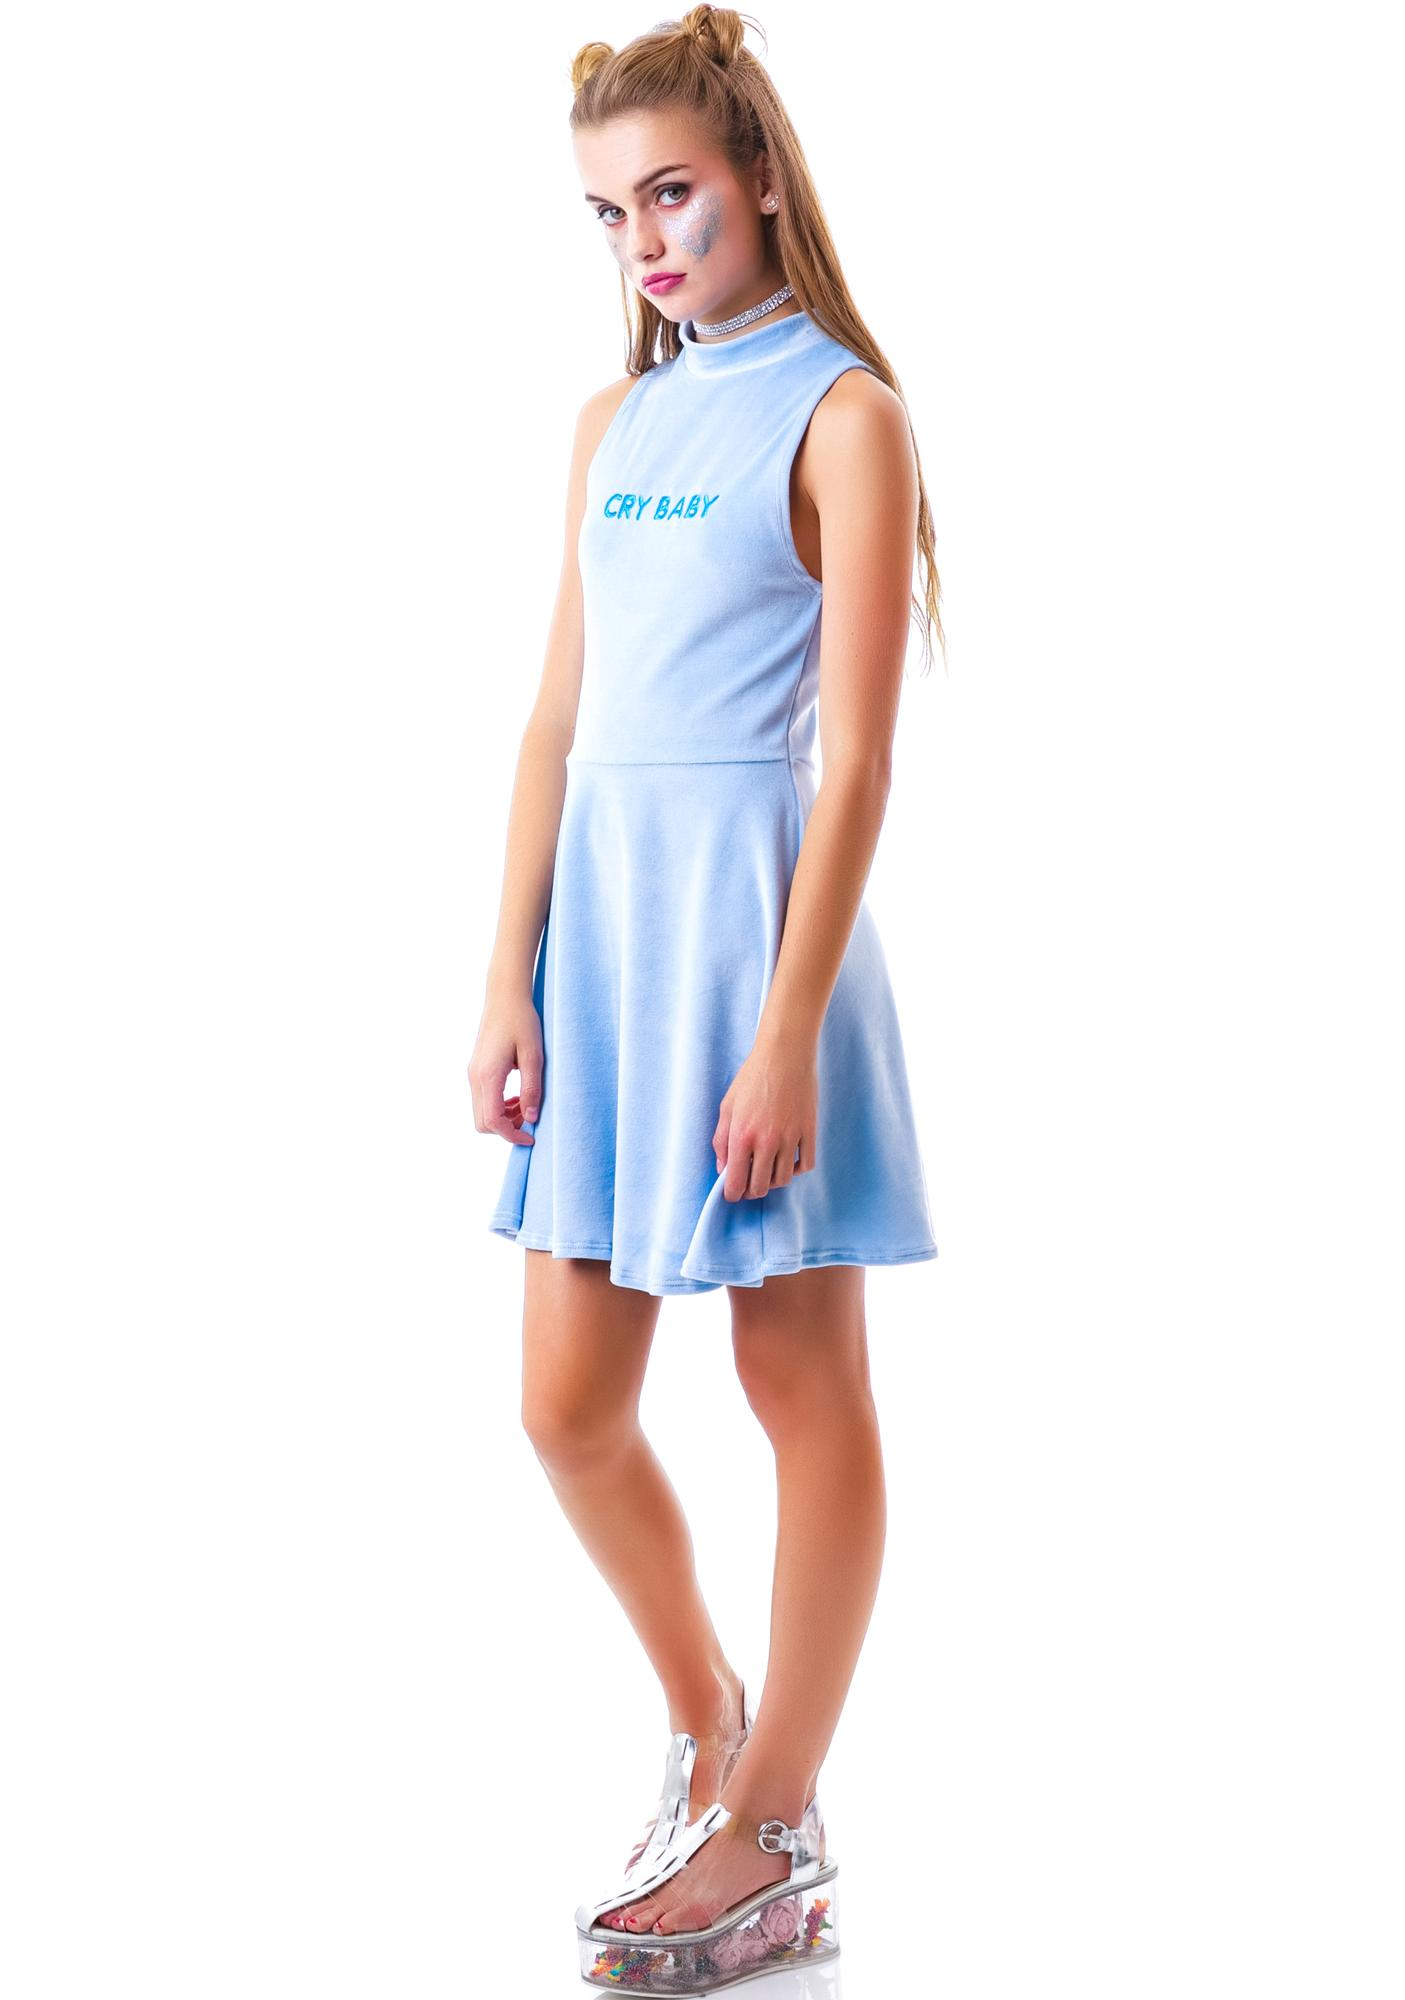 United Couture Cry Baby Velvet Sugar Dress